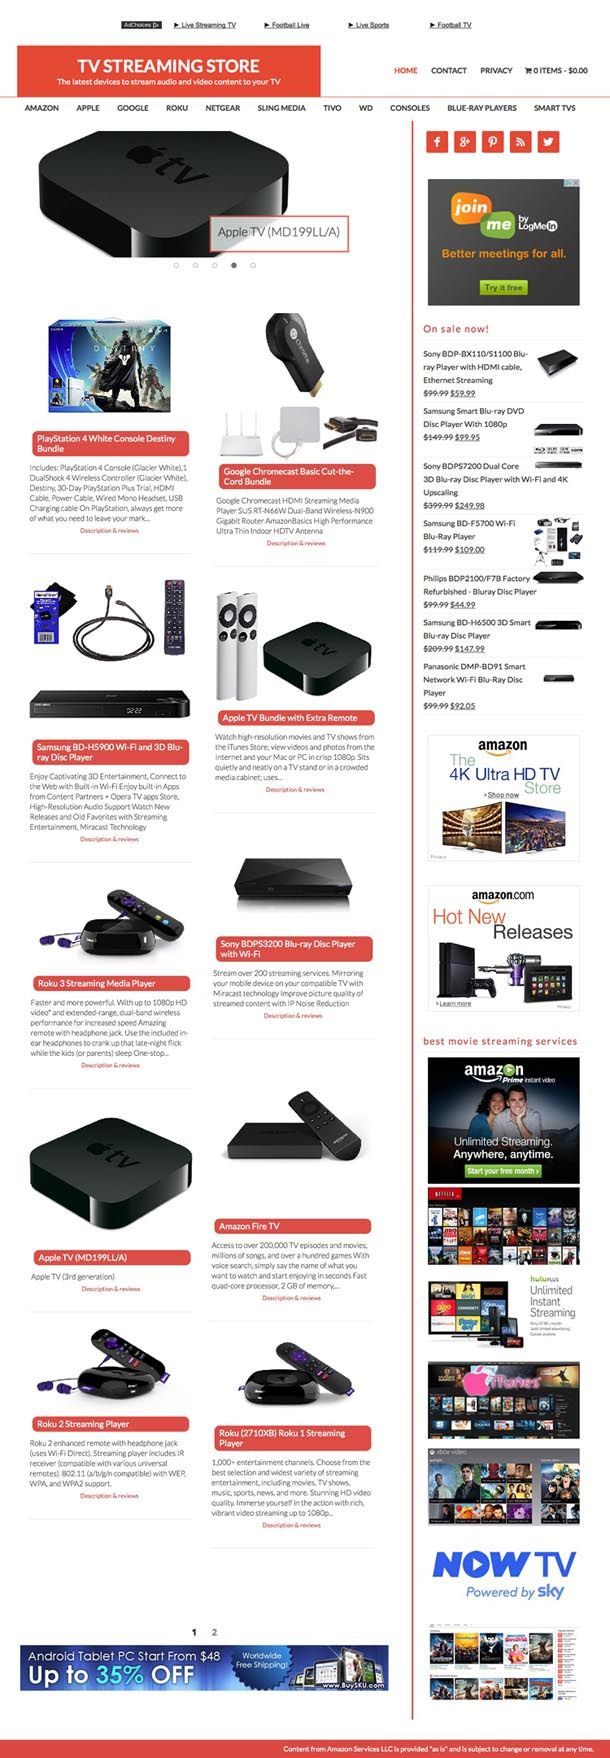 Streaming media players store!! Just Netflix and YouTube together make up half of all Internet traffic. There is and will be a huge demand for media streaming devices, accessories and content providers. This is the hottest niche in the already hot electronics. The site covers every brand from Amazon TV to Apple TV to Roku, Chromecast,and even non specific streaming devices such as the hugely popular consoles Xbox, PS4 and Wii... television sets and Blue-ray players are also included.